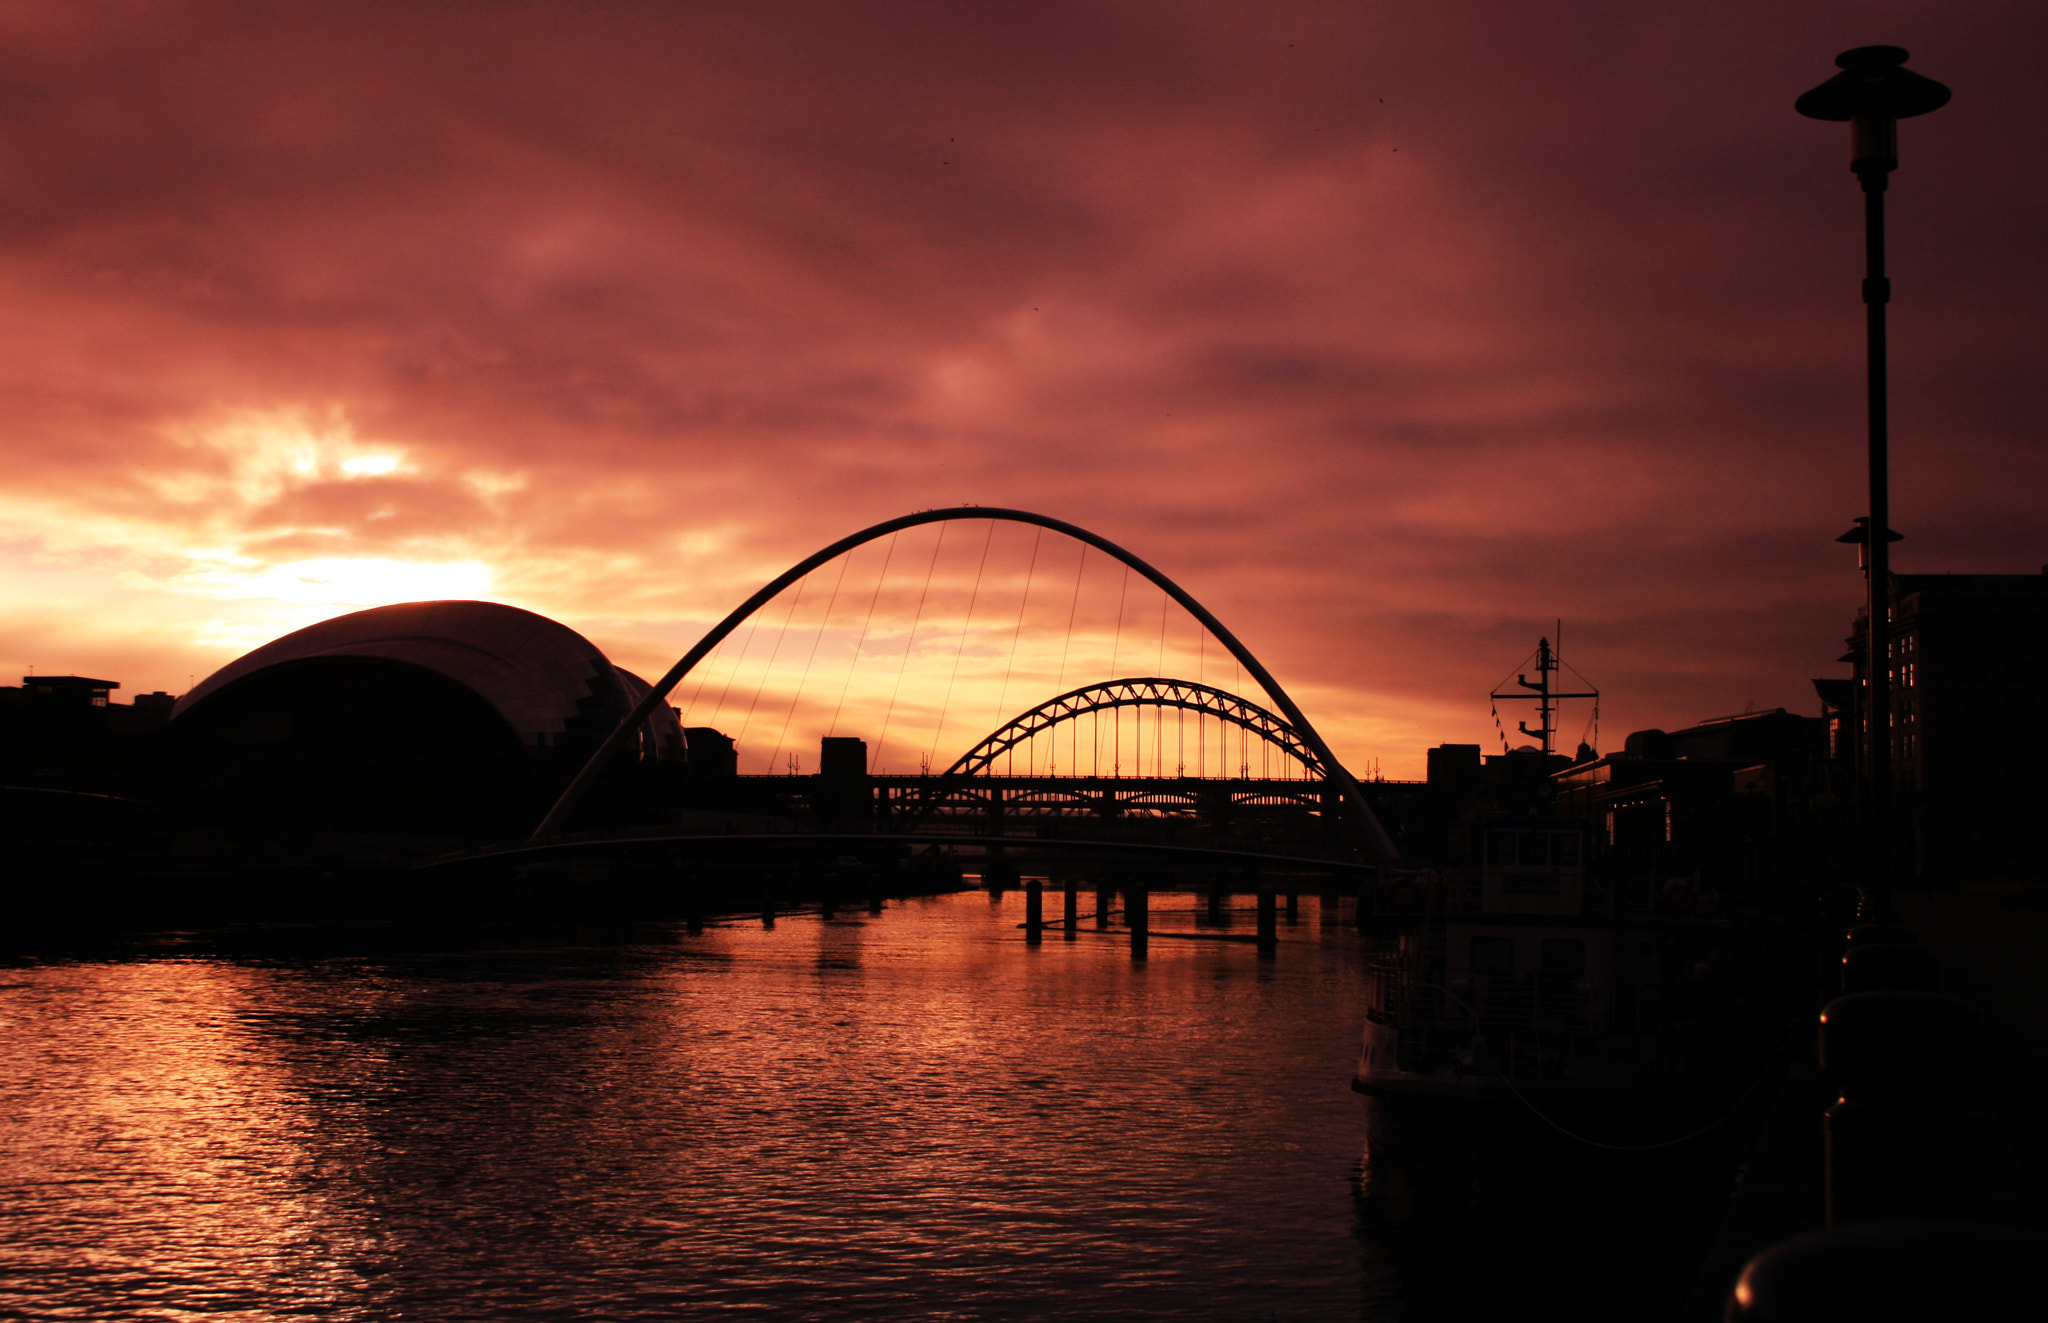 Photograph THE BRIDGES by Gary Turnbull on 500px